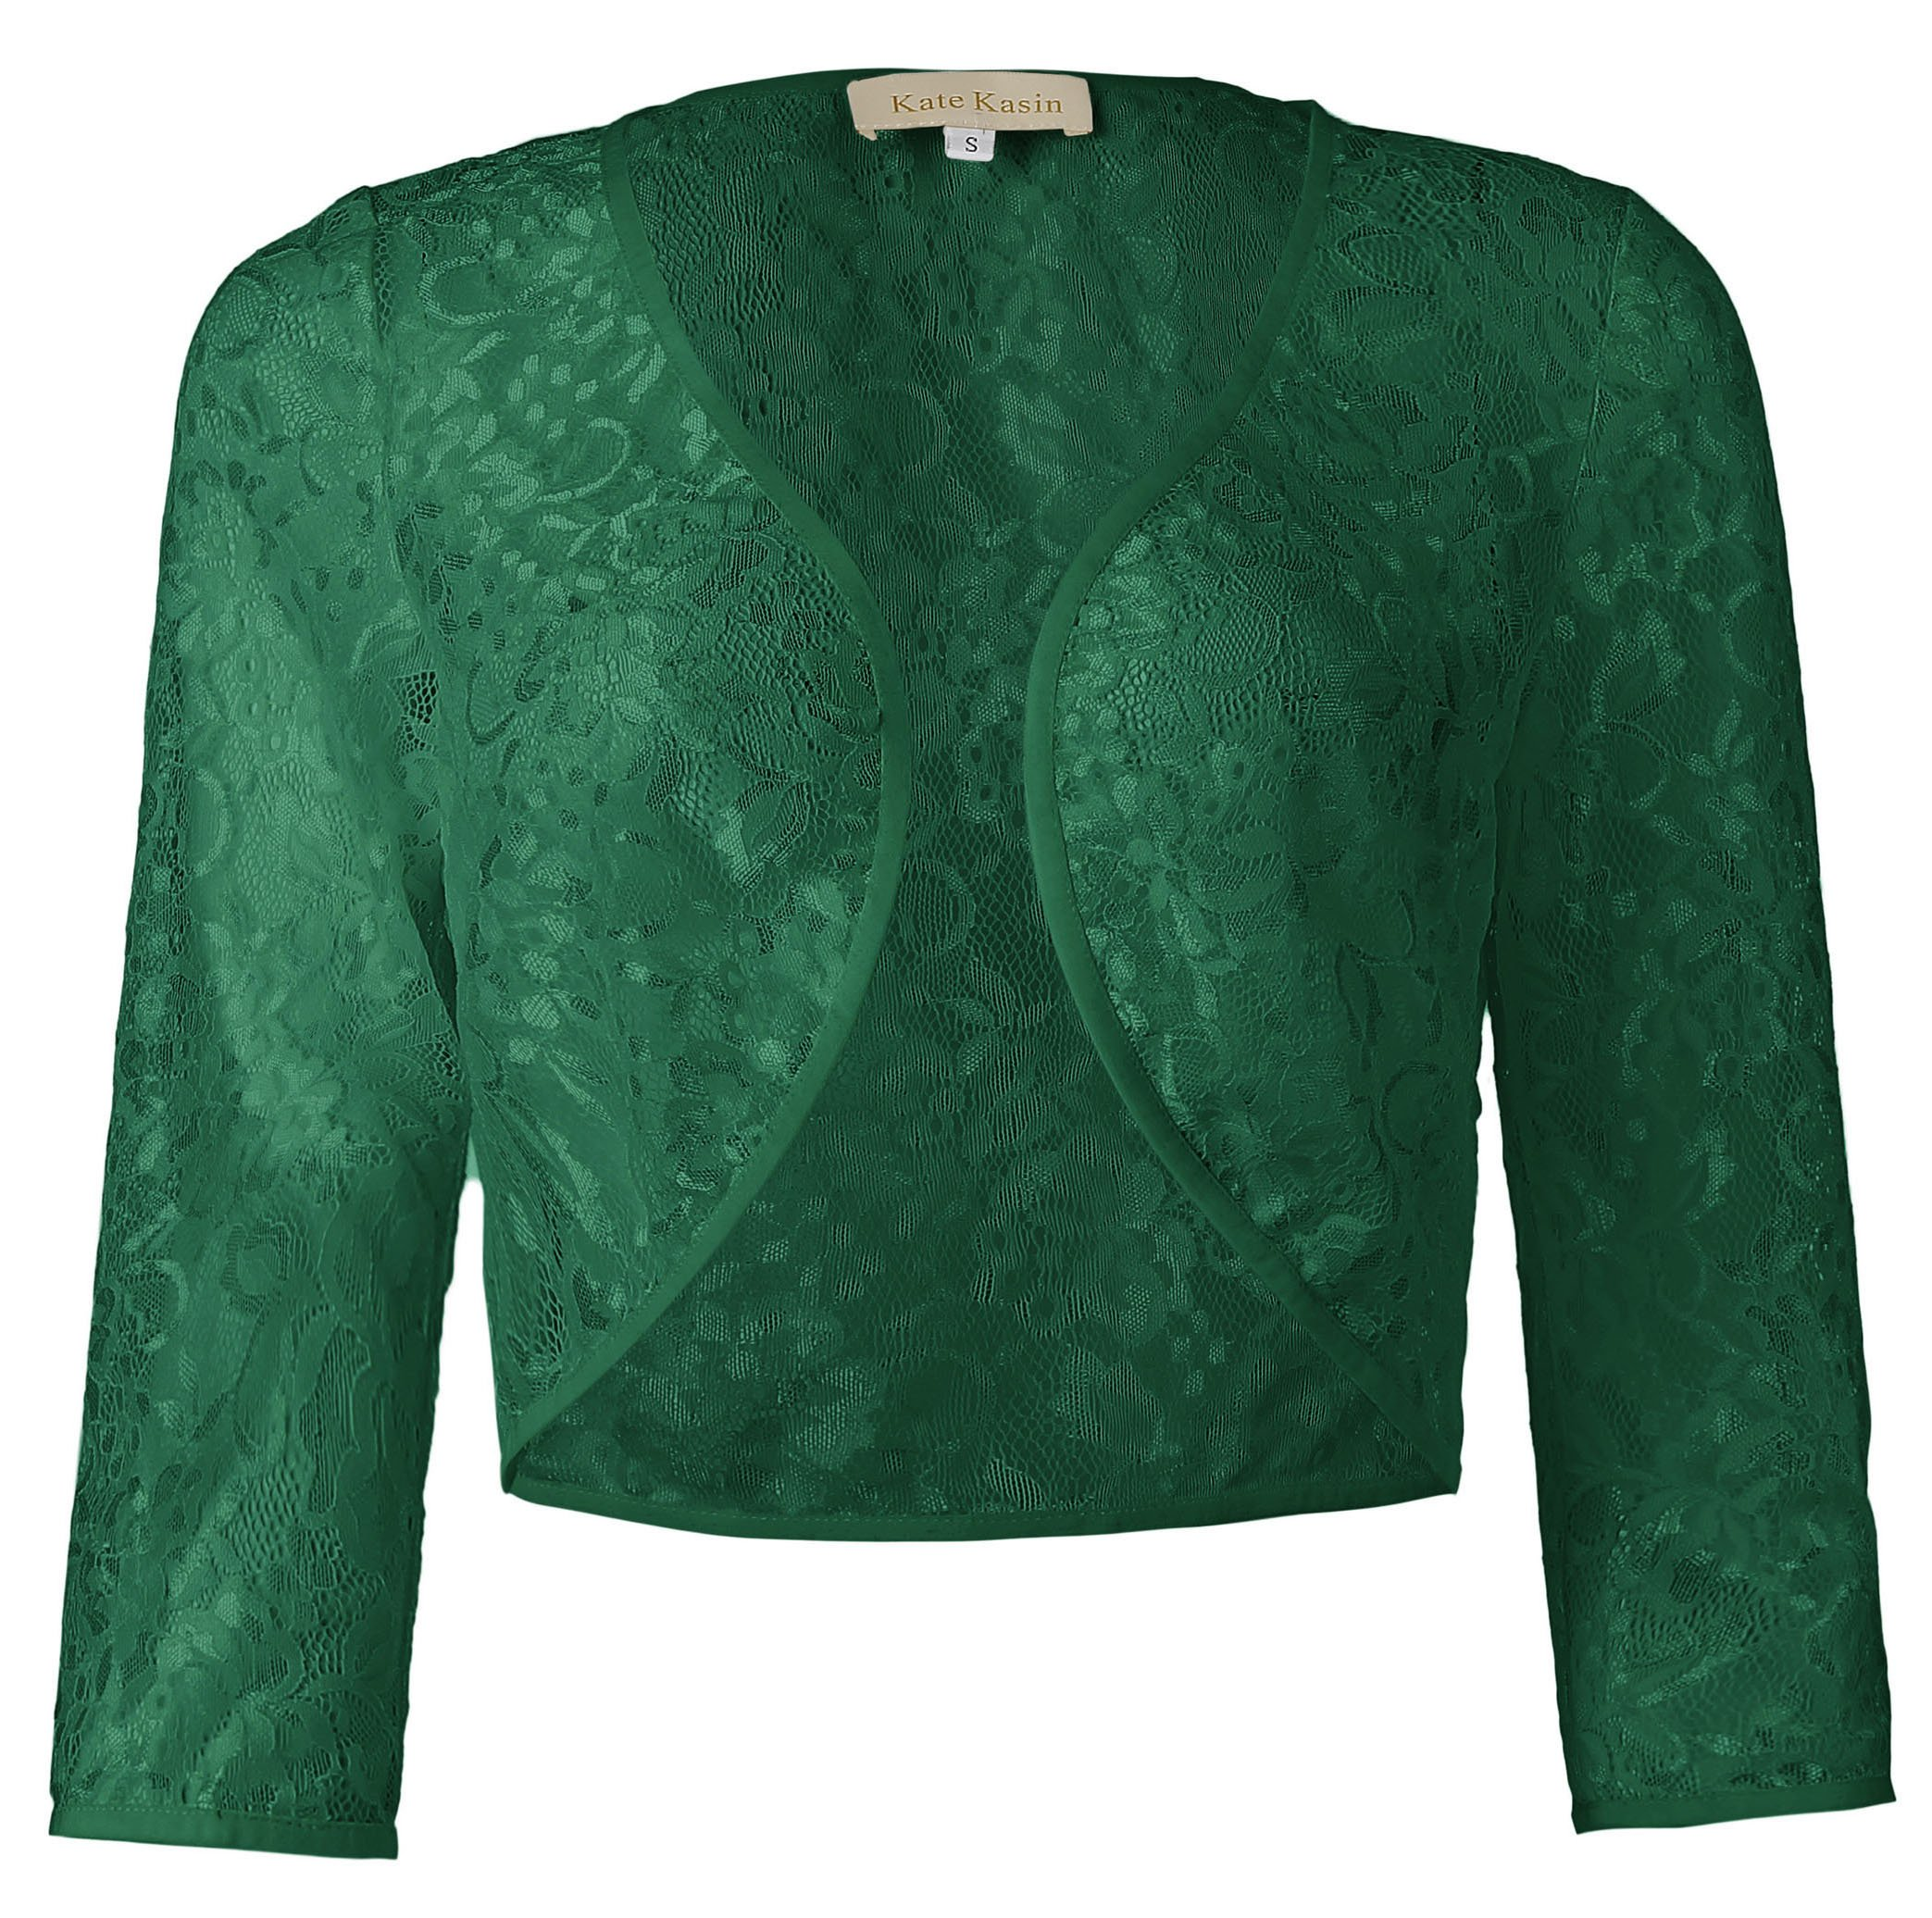 Kate Kasin Womens Floral Lace Bolero 3/4 Sleeve Shrug Open Front (Dark Green, M) KK430-4